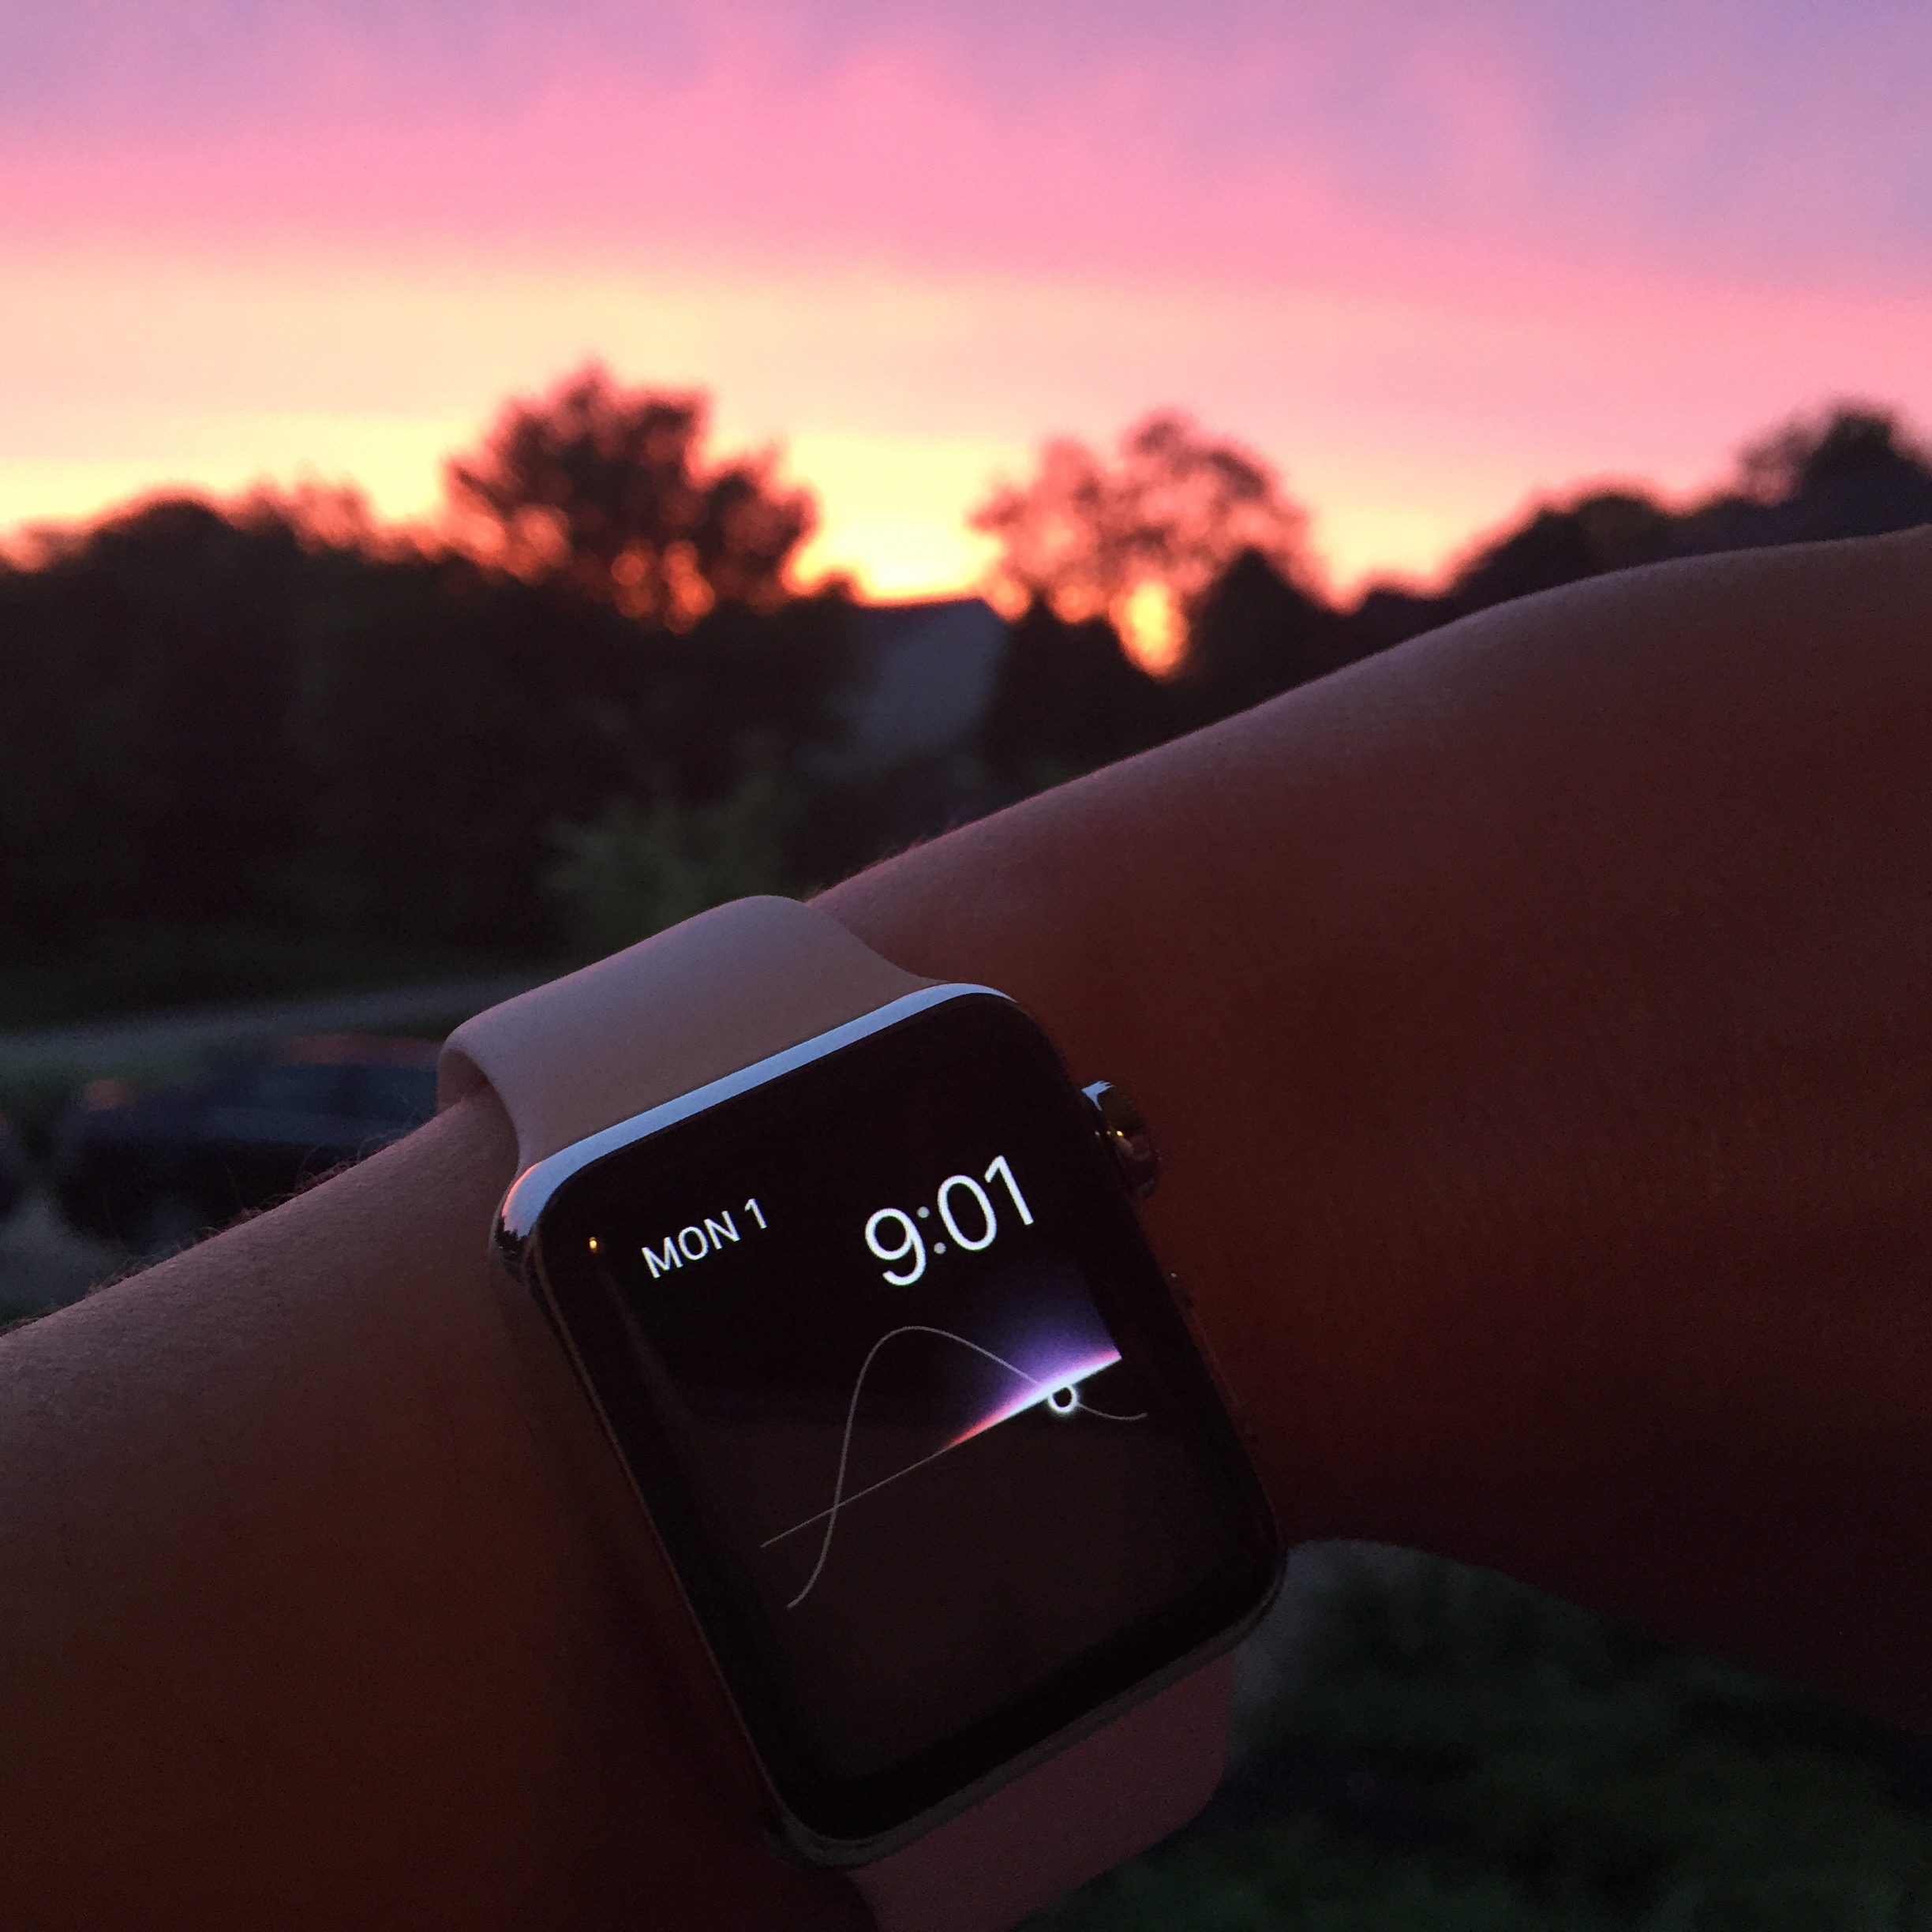 Late to the game, thoughts on Apple Watch after 3 months